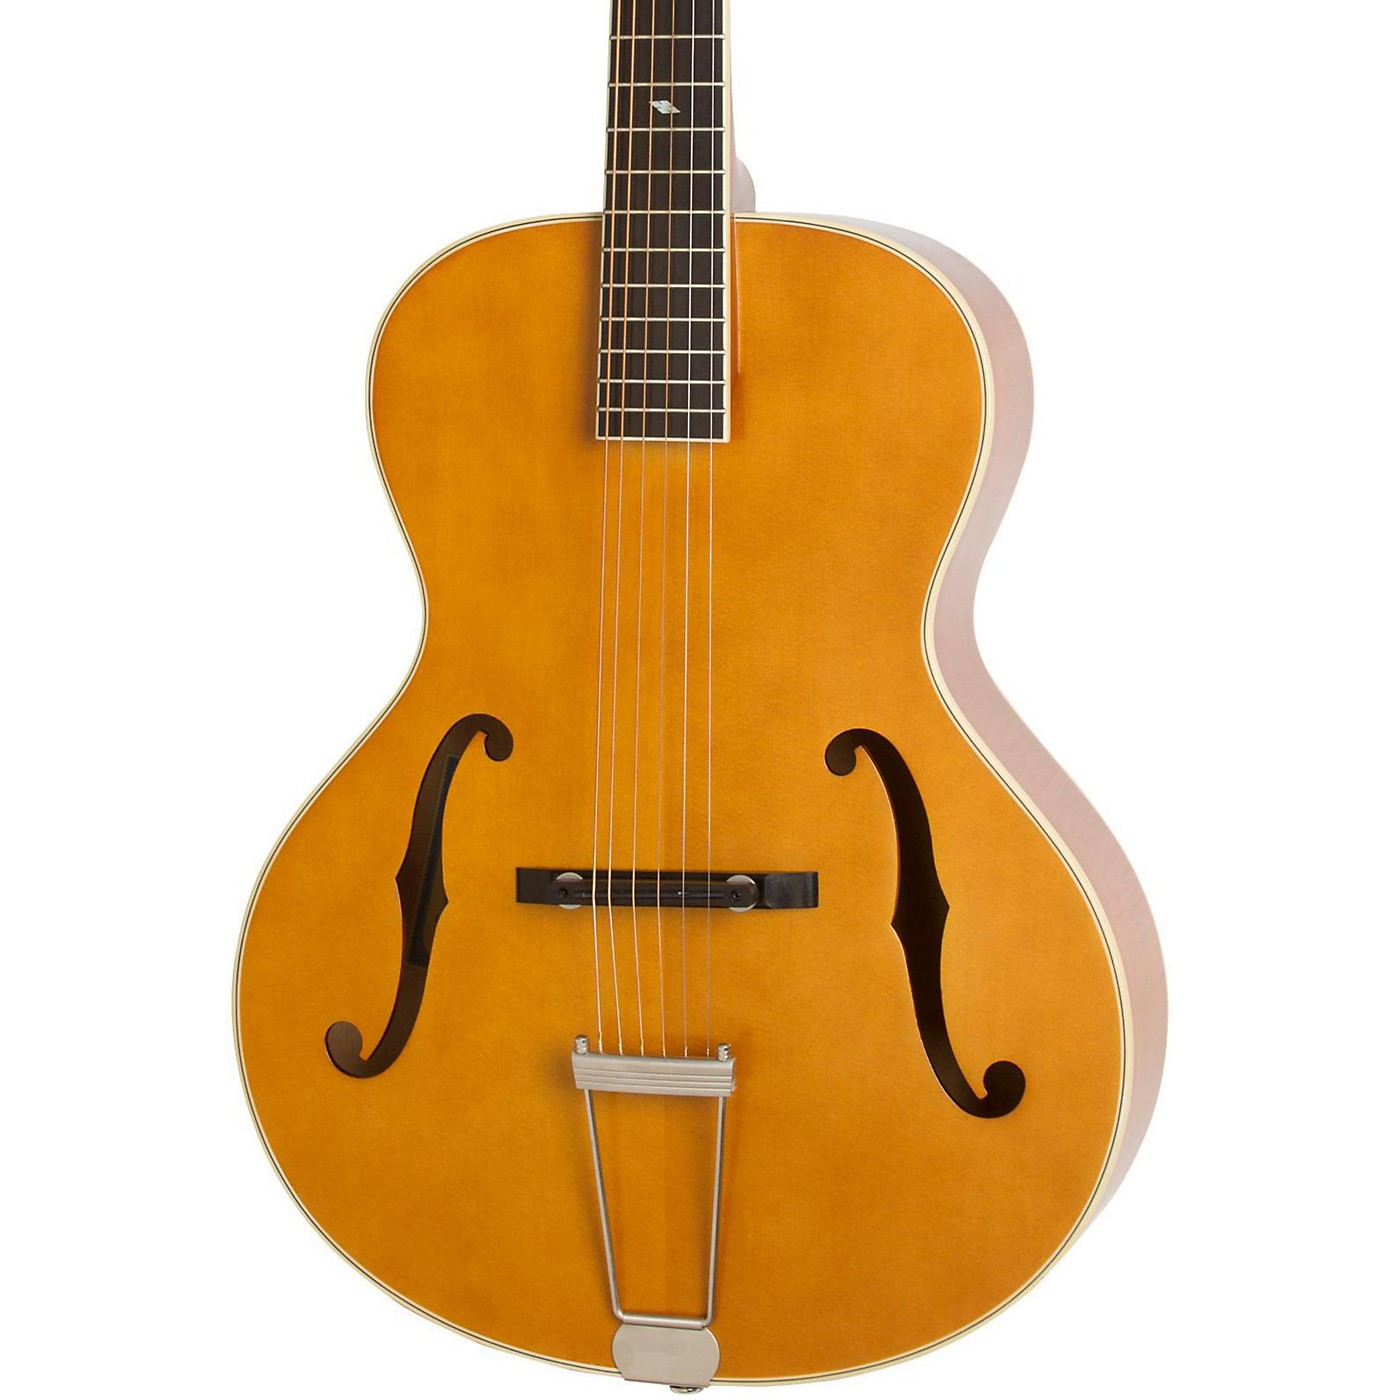 Epiphone Masterbilt Century Collection Zenith Classic F-Hole Archtop Acoustic-Electric Guitar thumbnail